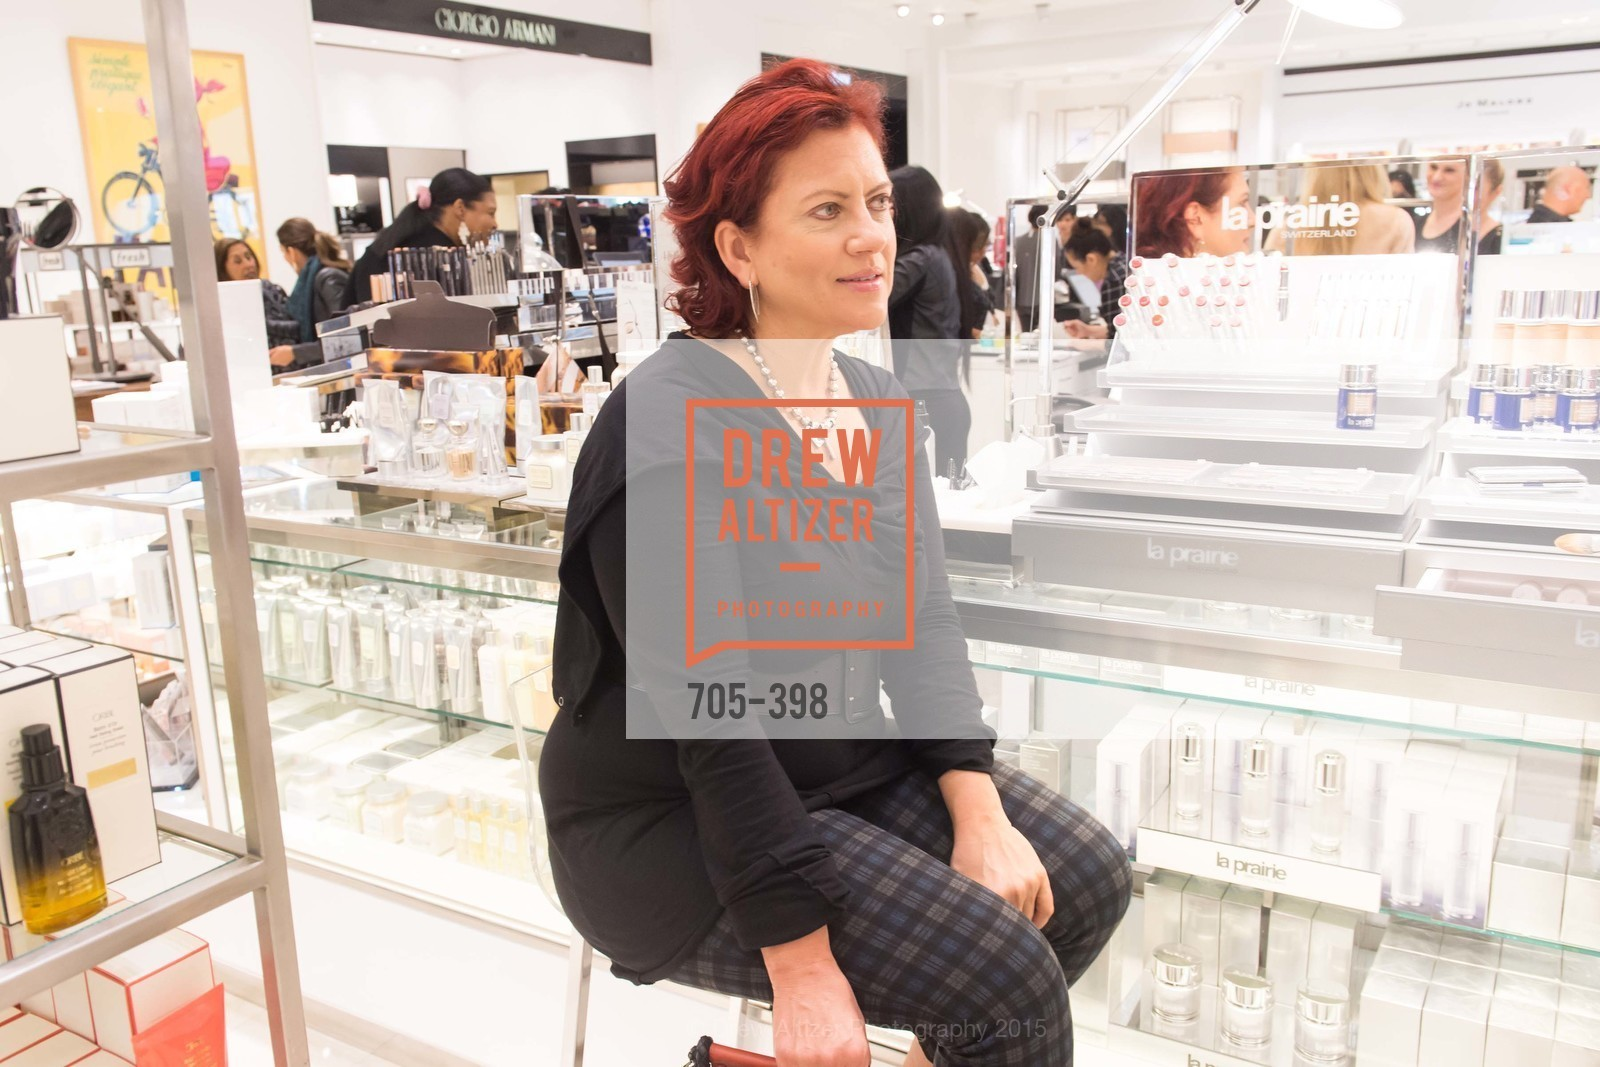 Top Picks, Project Beauty at Neiman Marcus Palo Alto, October 16th, 2015, Photo,Drew Altizer, Drew Altizer Photography, full-service agency, private events, San Francisco photographer, photographer california